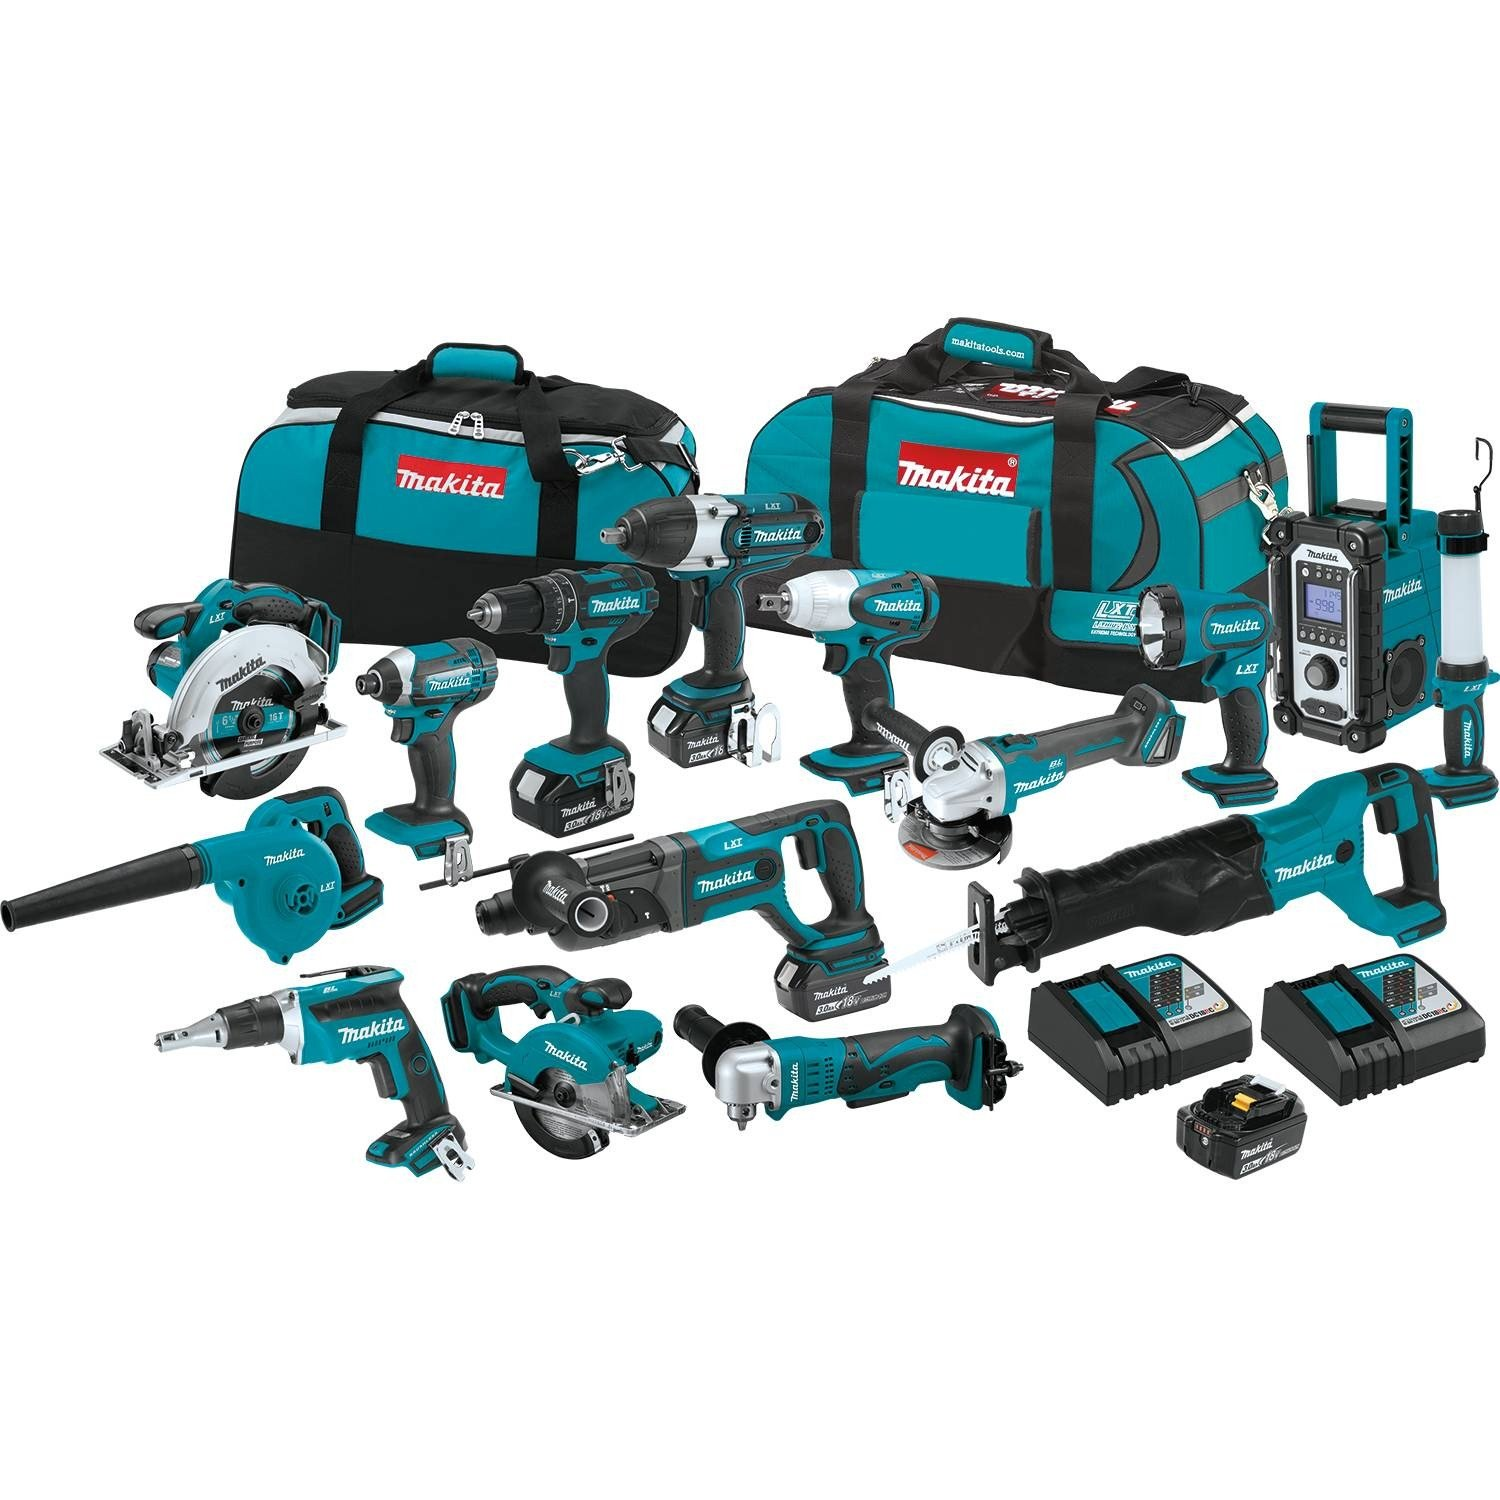 71Y9ZahLoWL Where to Buy Makita, DeWalt, & Ingersoll Rand Tools